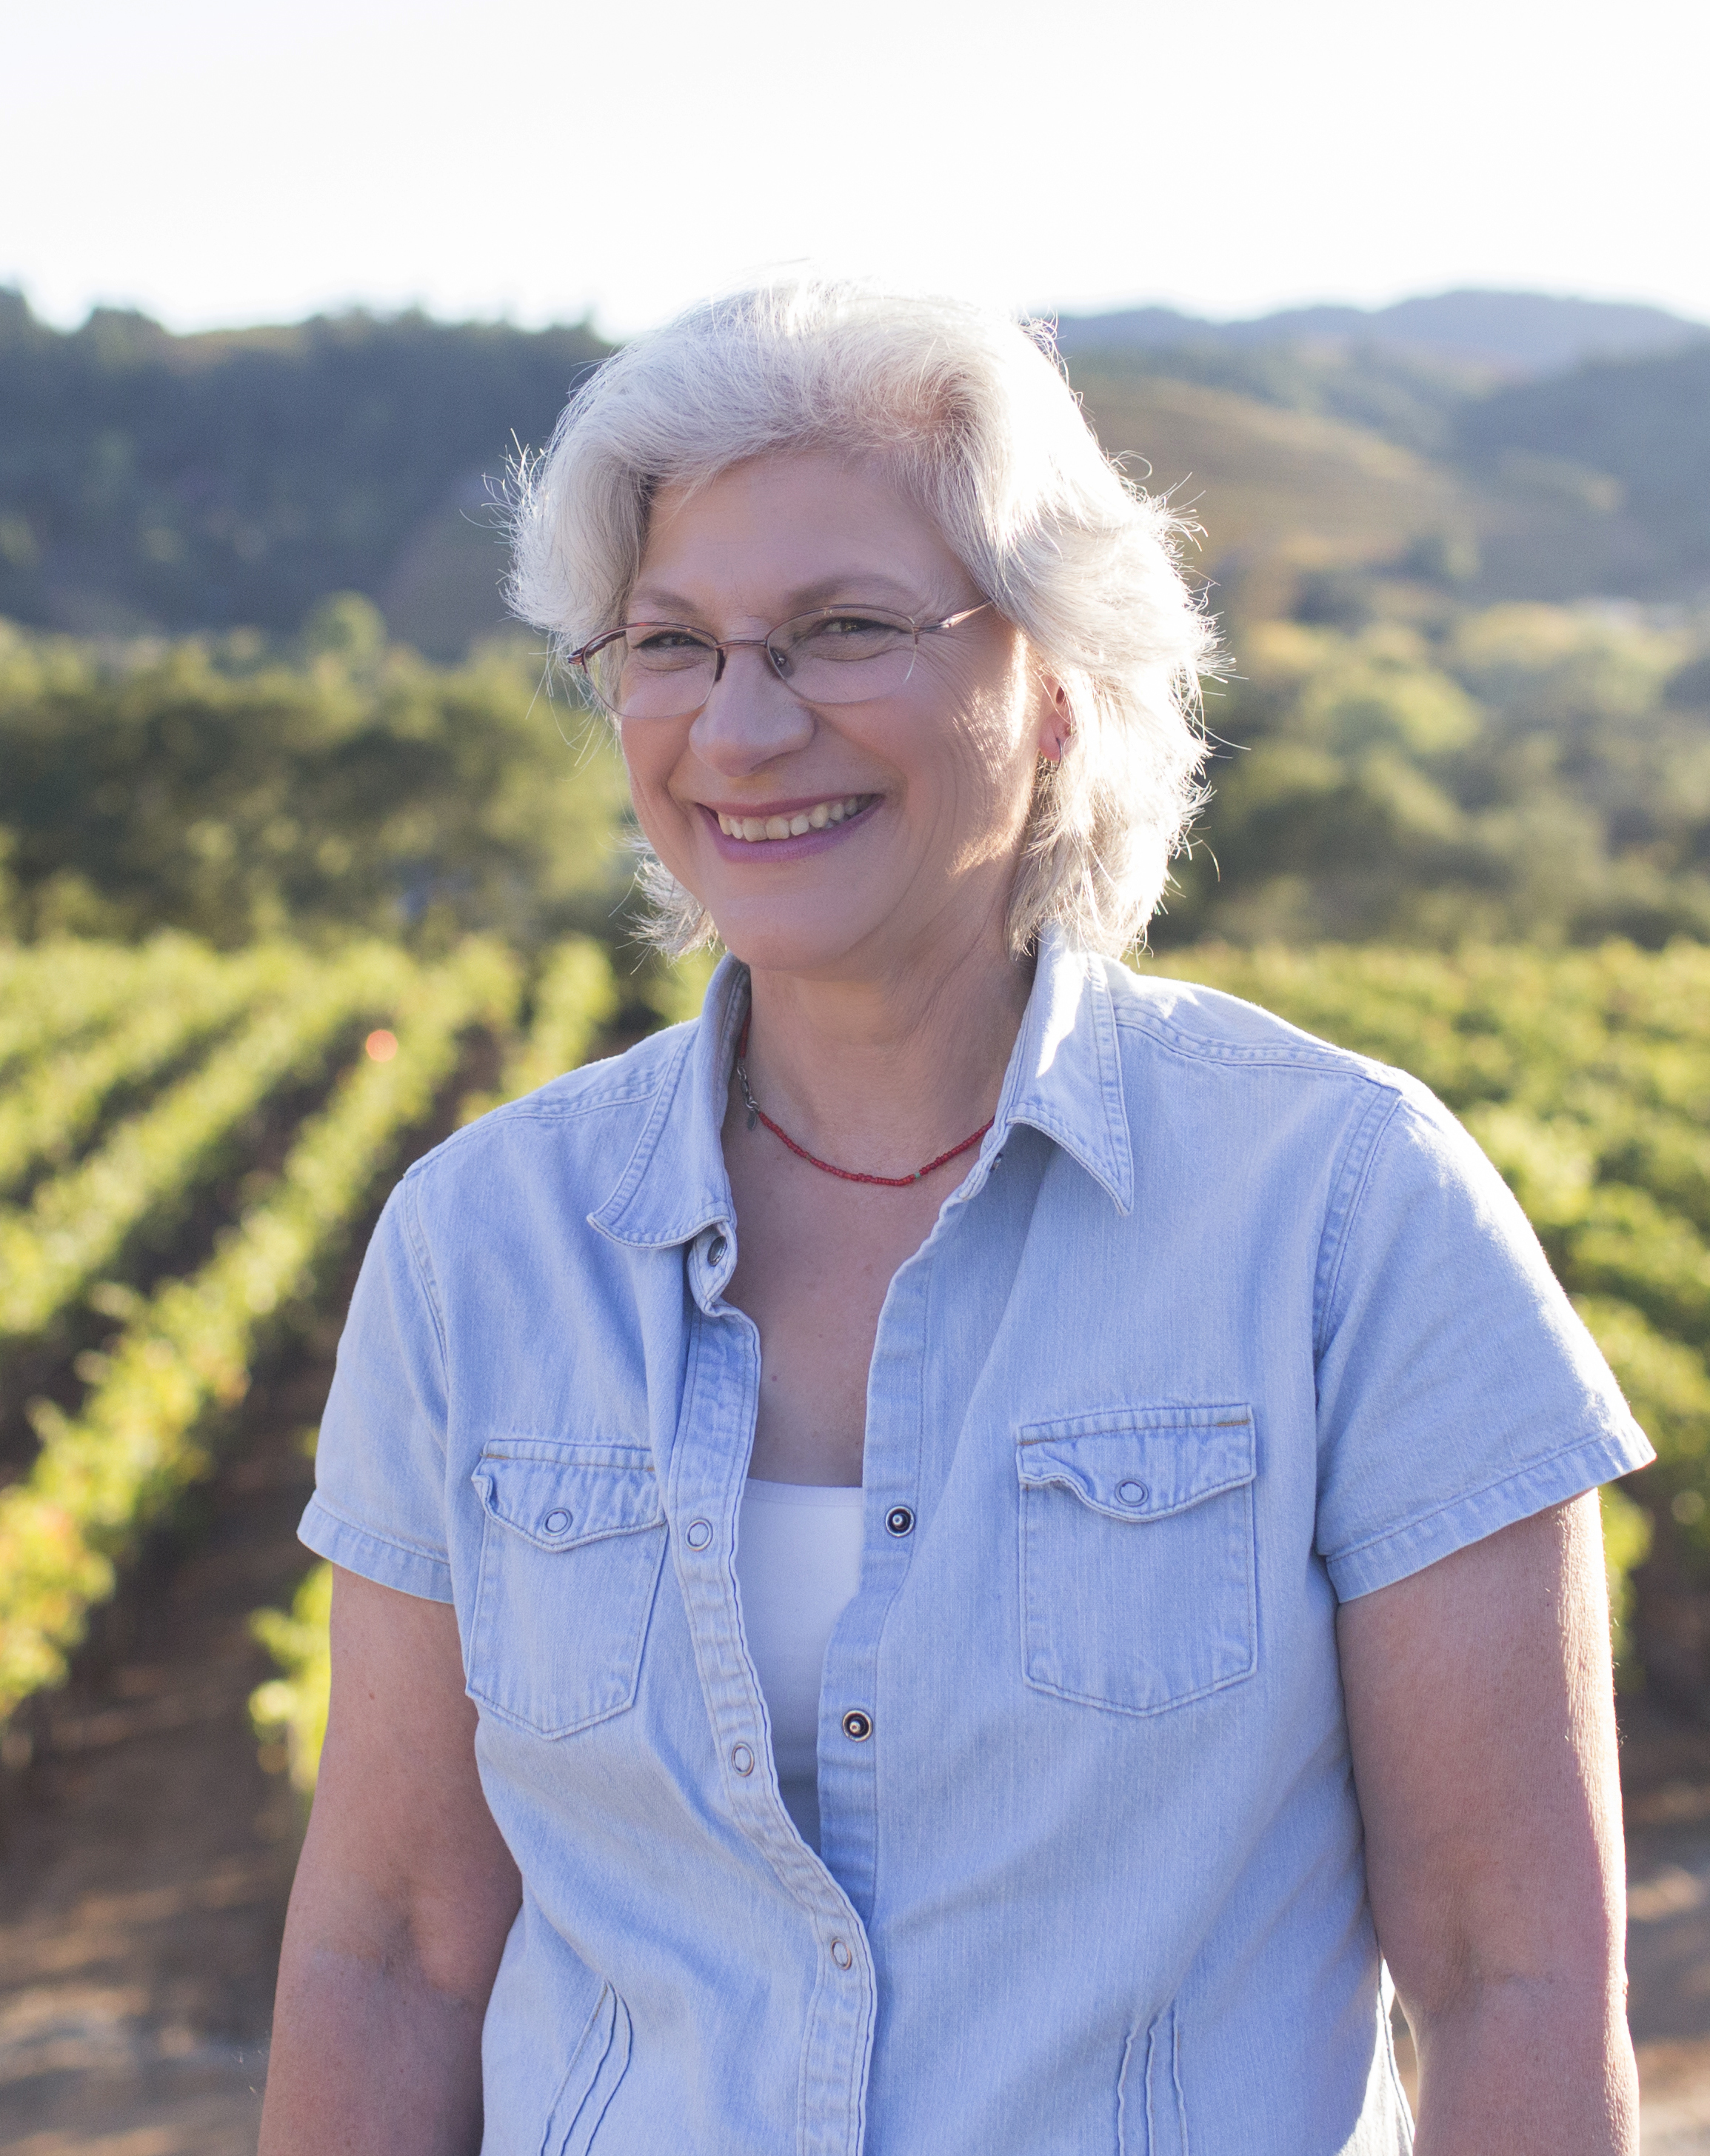 Rack & Riddle Winemaker Penny Gadd-Coster | VAULT29